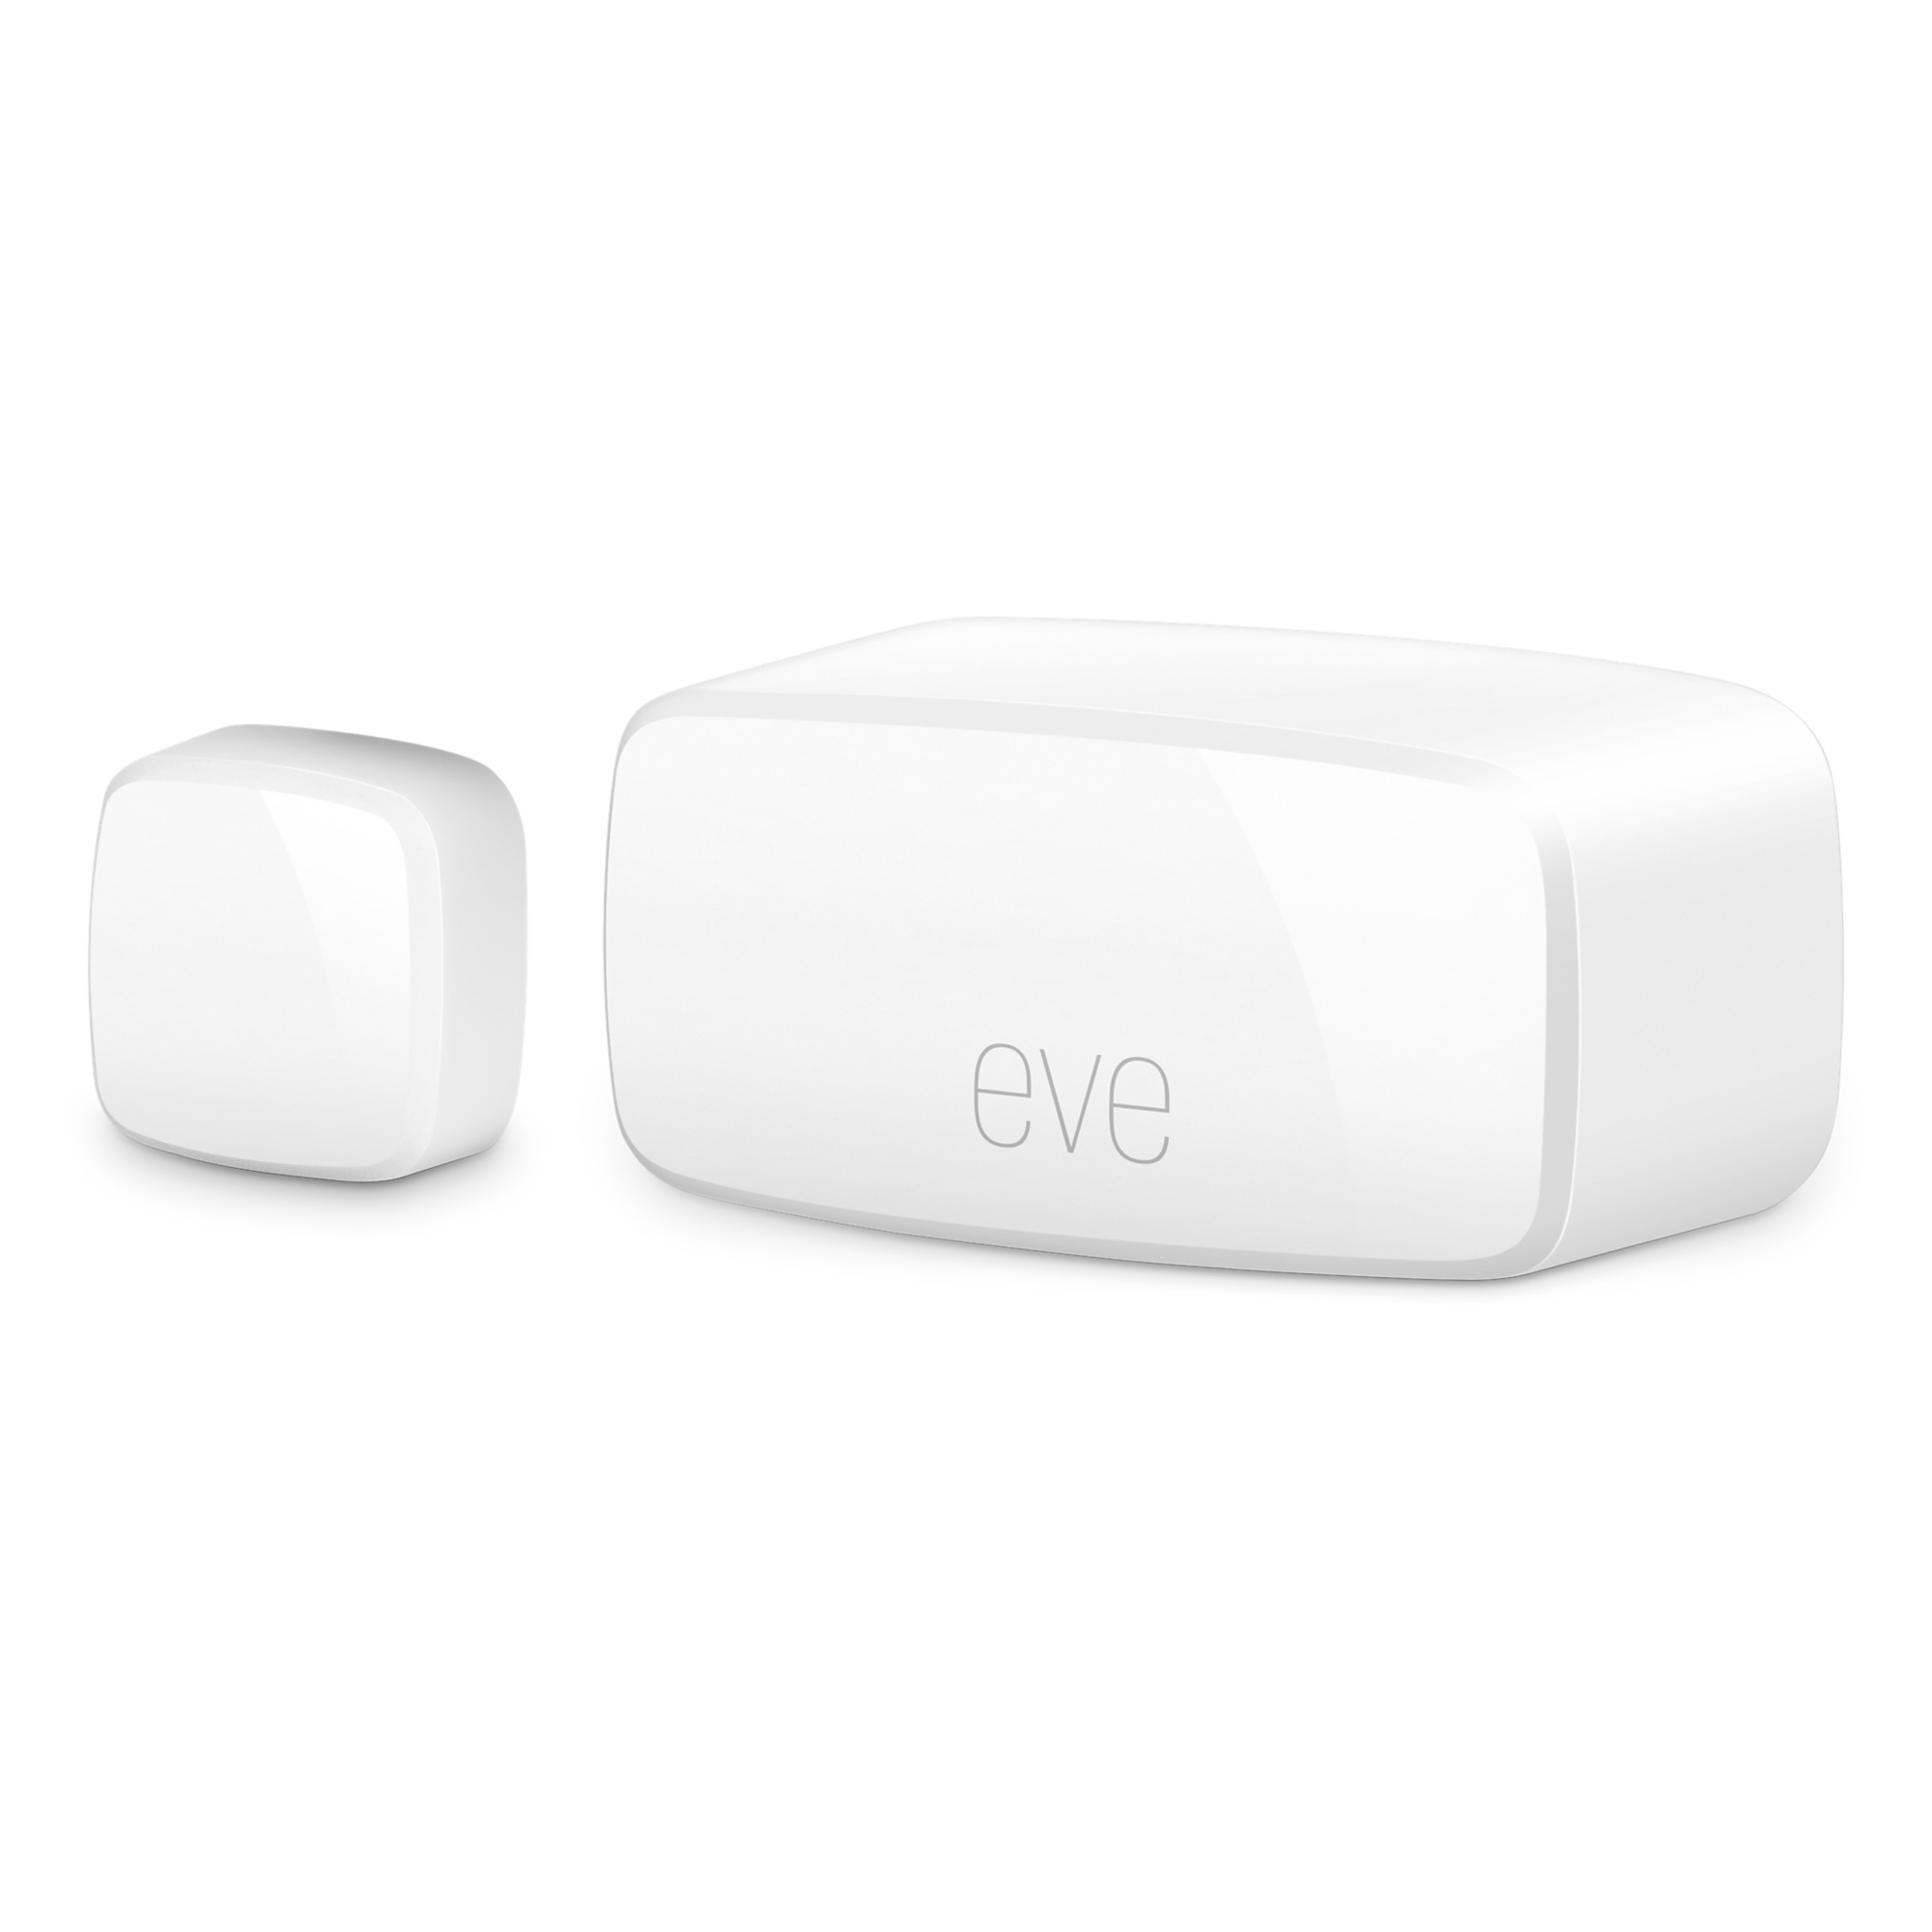 elgato-eve-door-window-wireless-contact-sensor